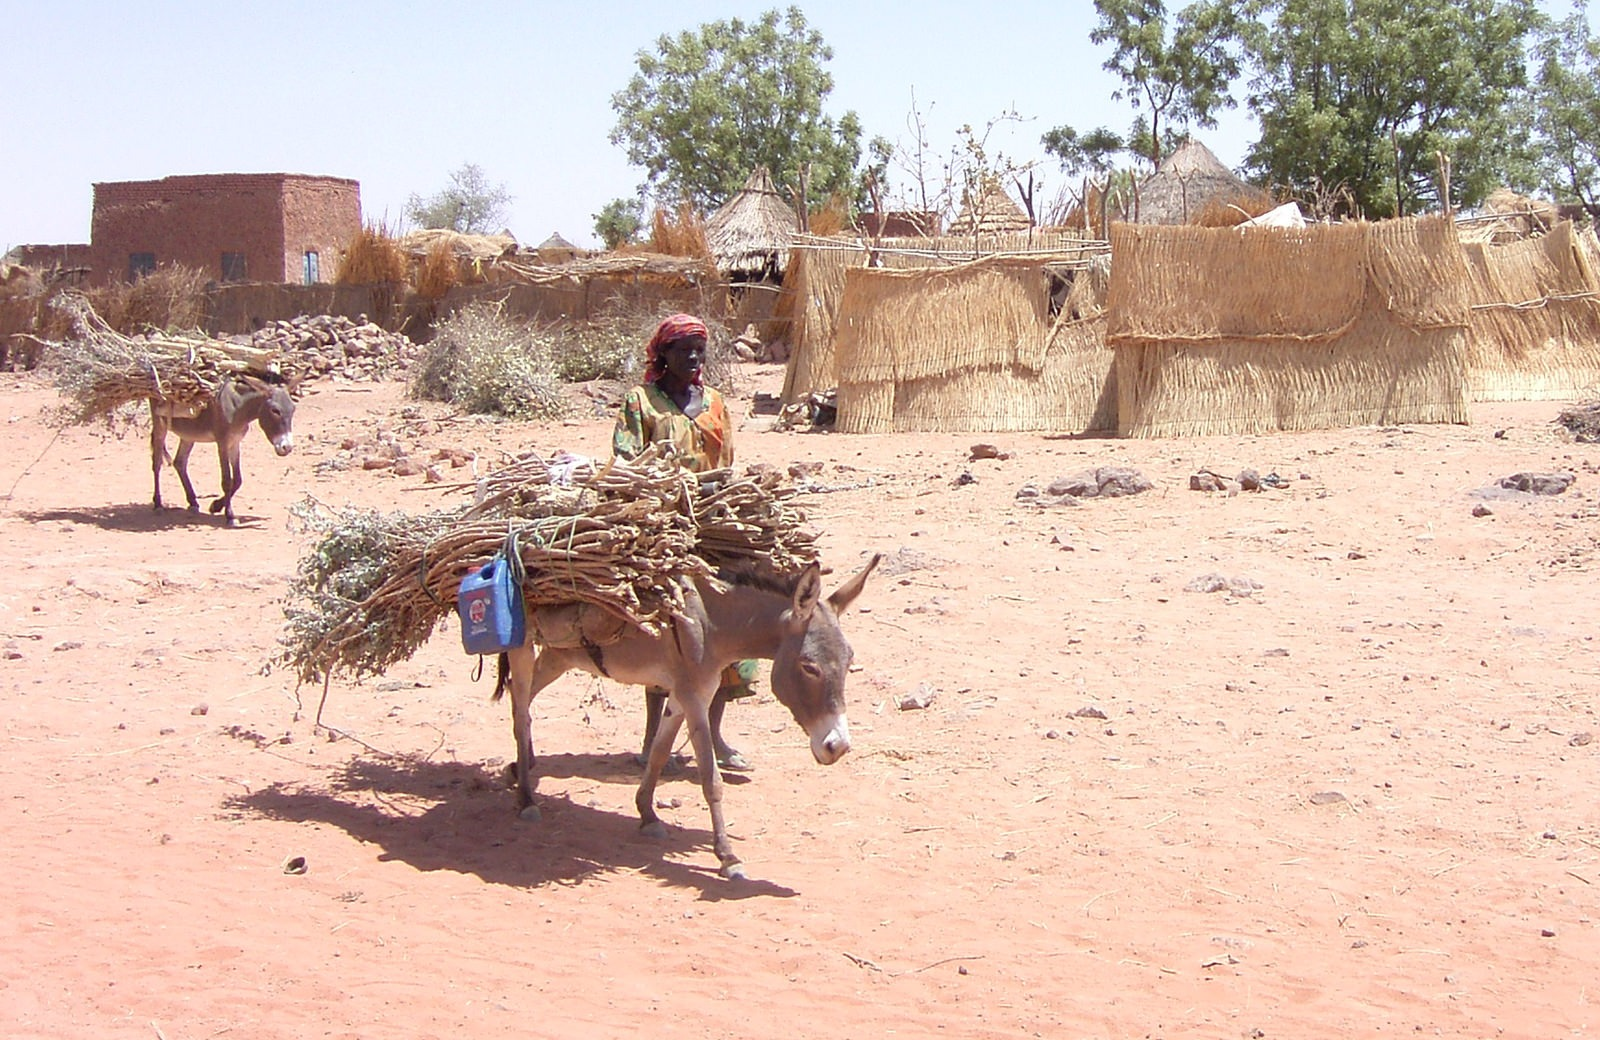 A Sudanese man fetching water in a country struggling with drought and desertification